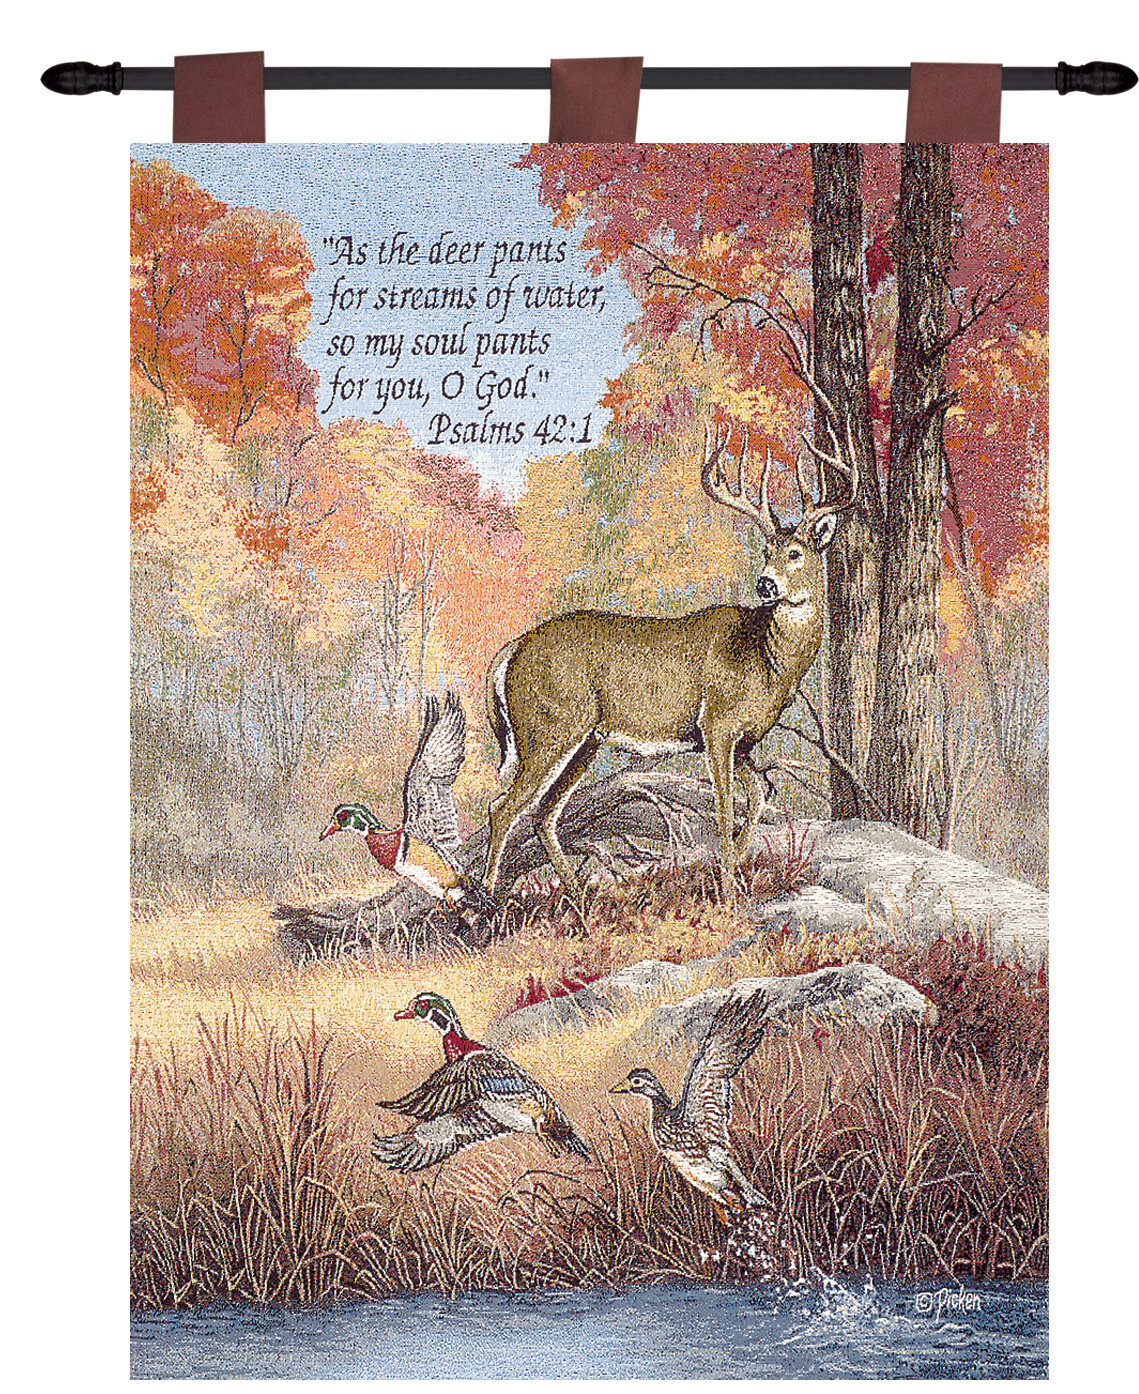 Fur Feathers & Fall Verse Tapestry For Latest Blended Fabric Autumn Tranquility Verse Wall Hangings (View 2 of 20)